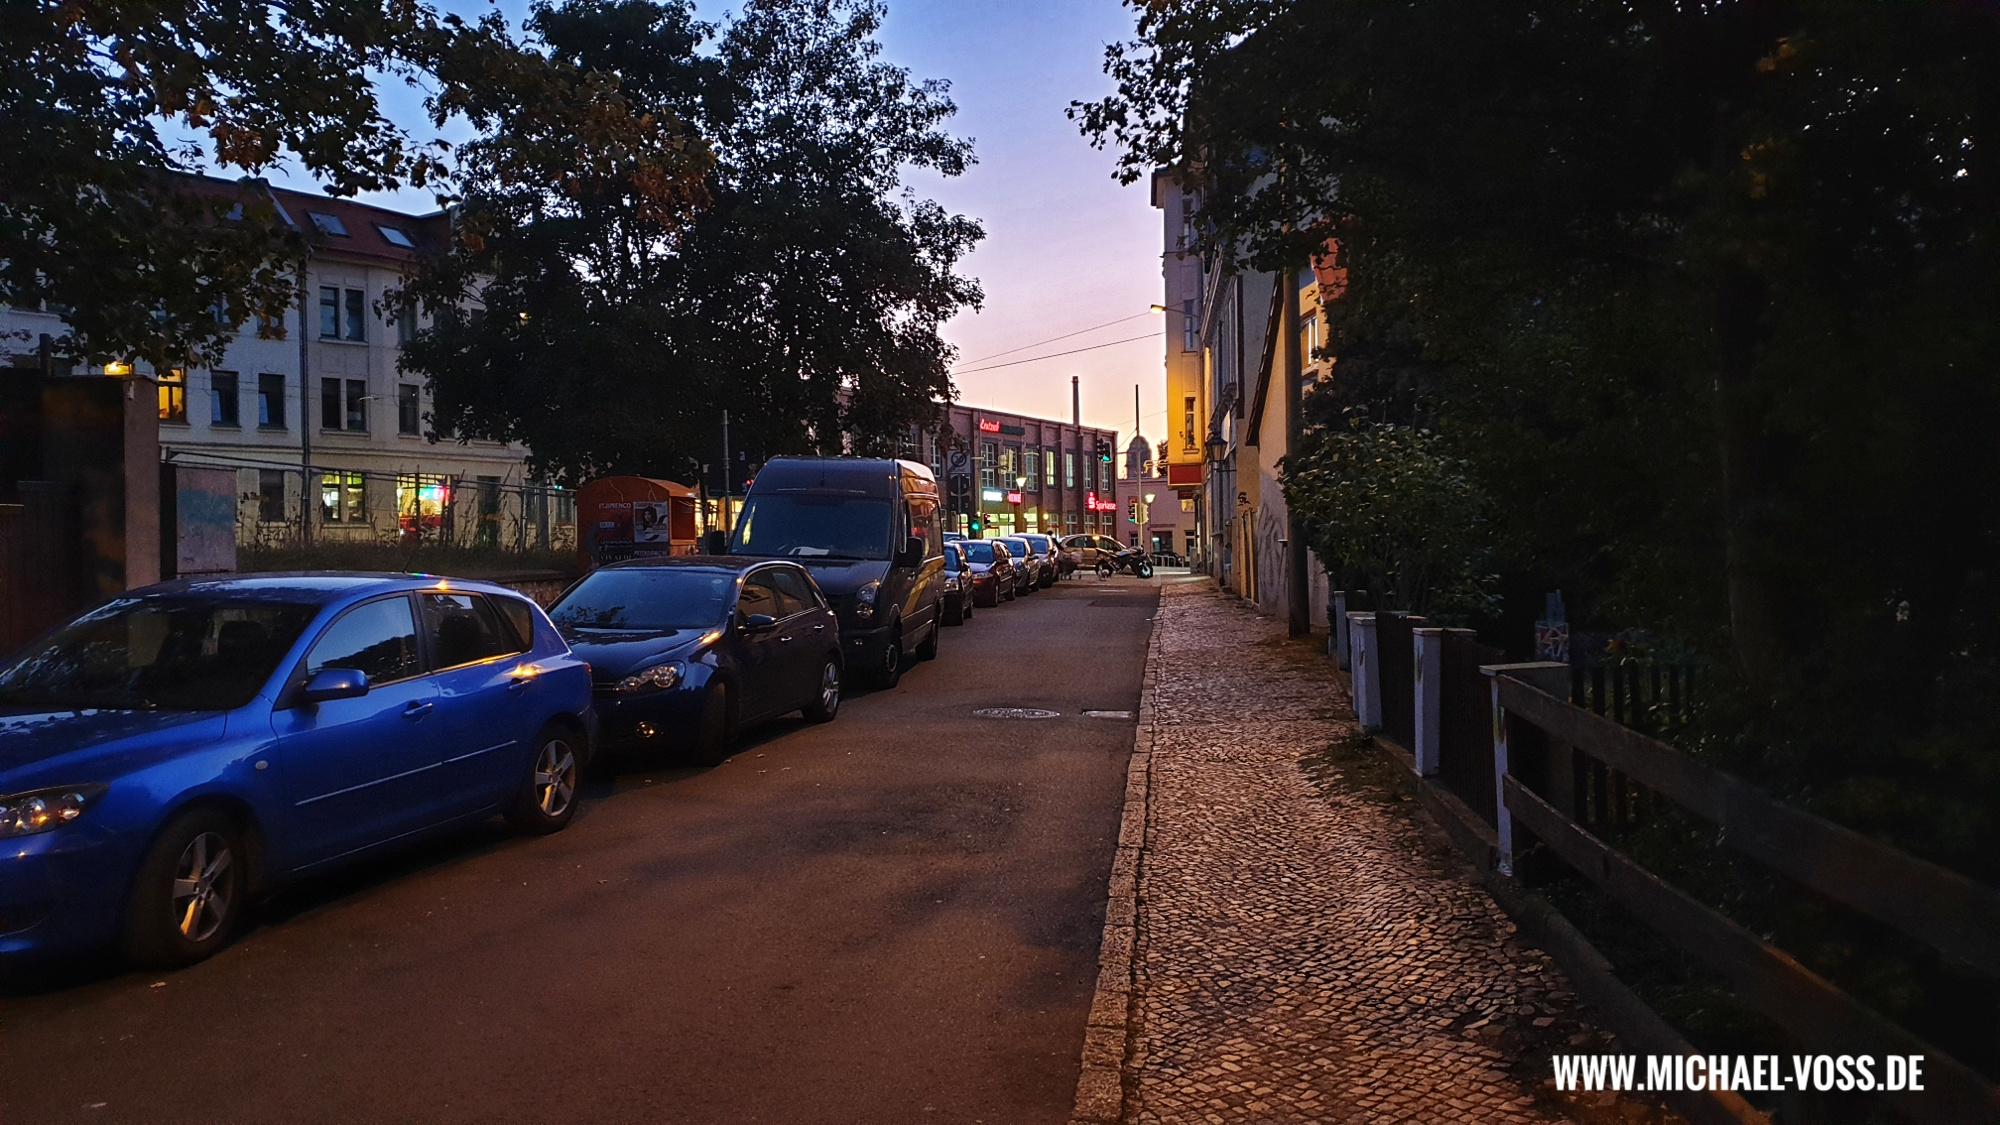 Abendstimmung am Ende der William-Zipperer-Straße in Leipzig